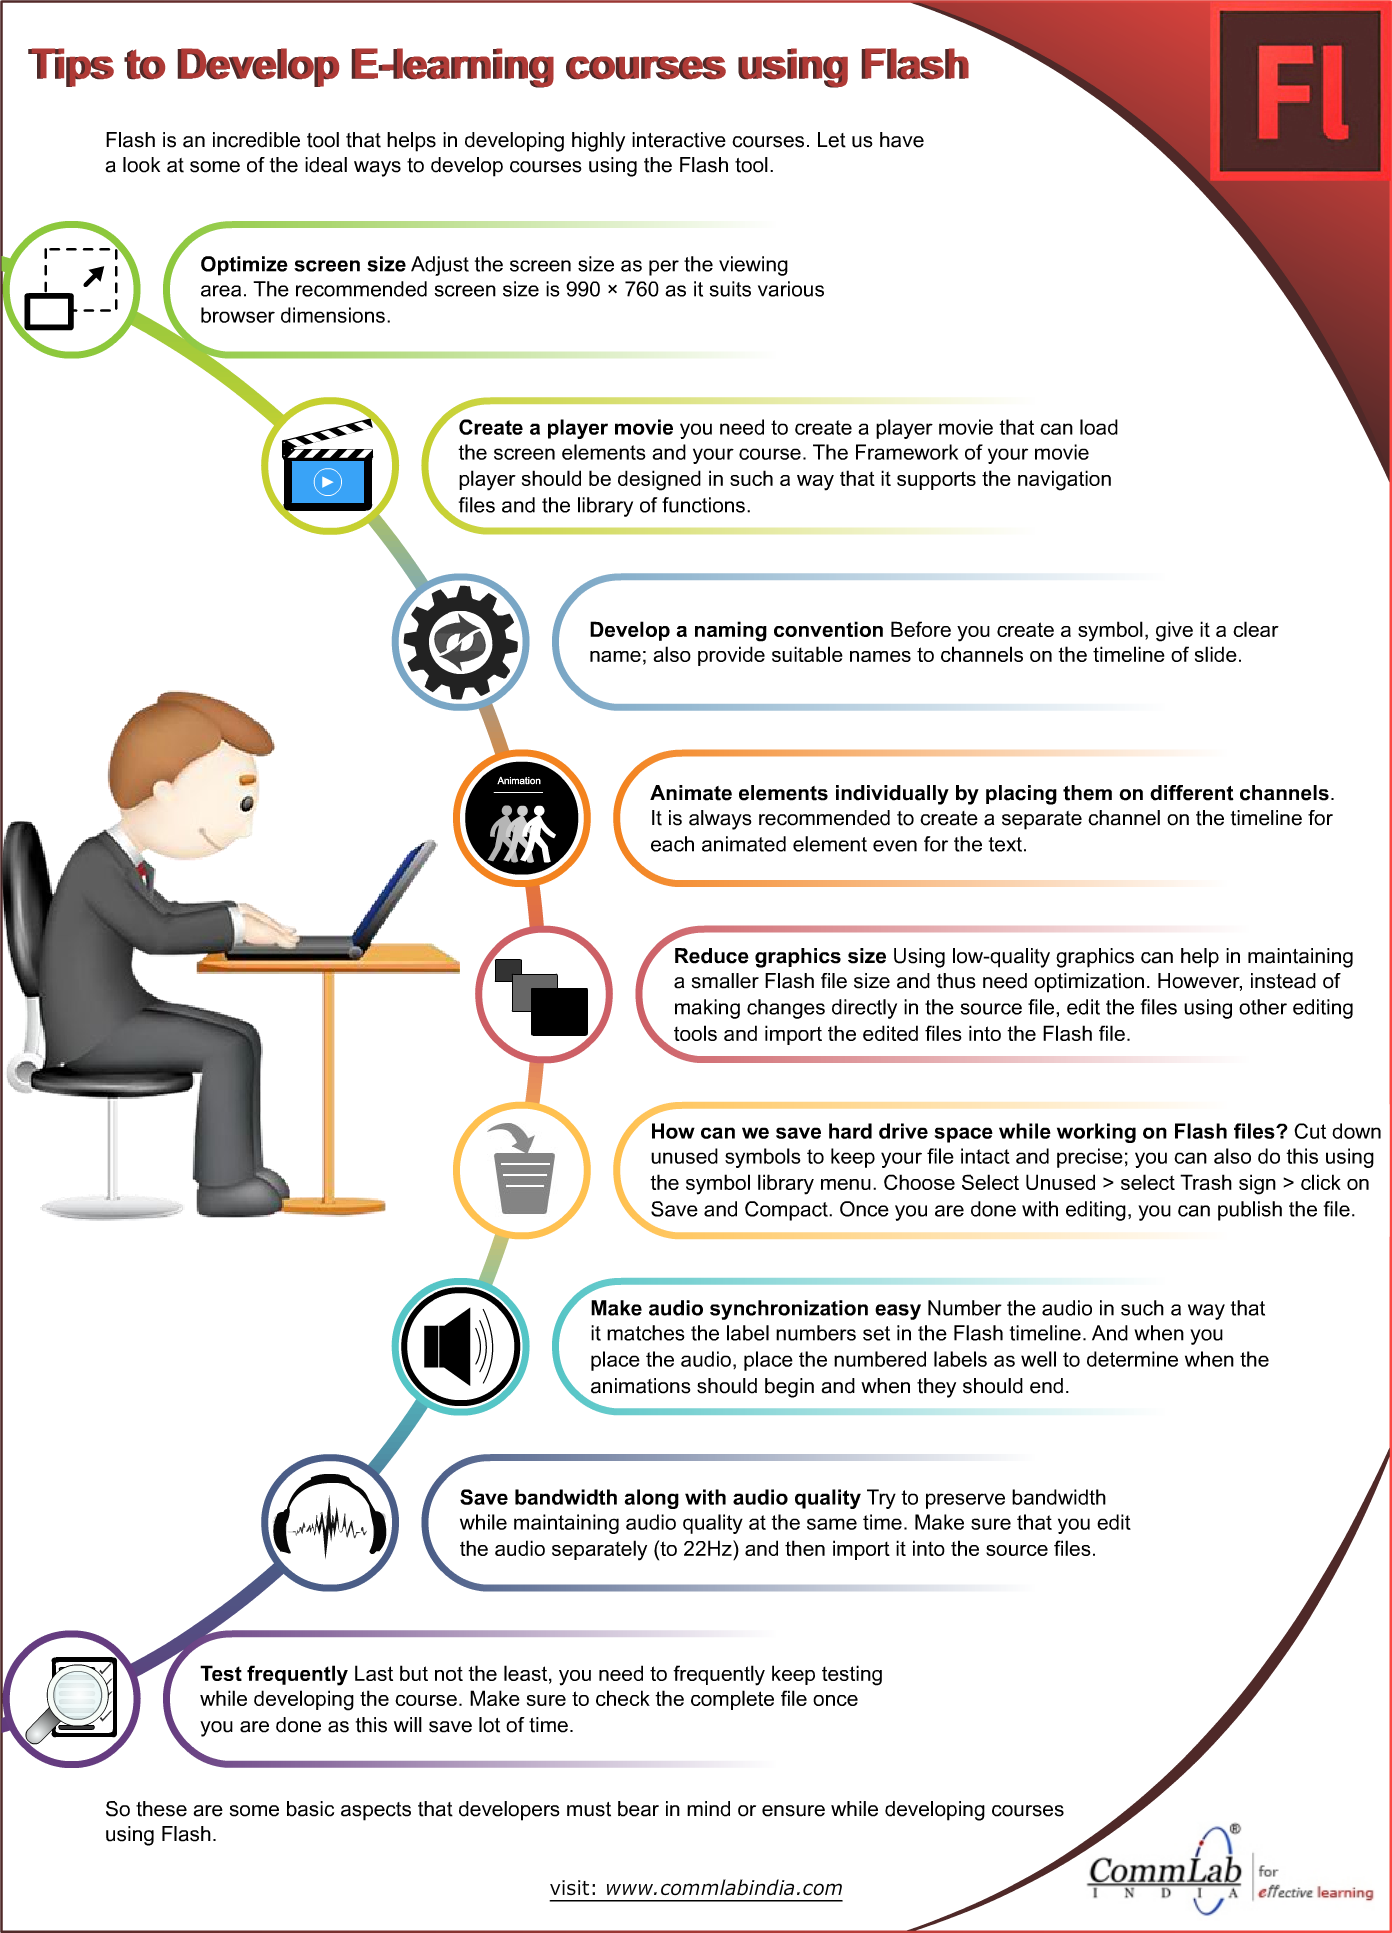 Tips to Develop E-learning Courses Using Flash - An Infographic